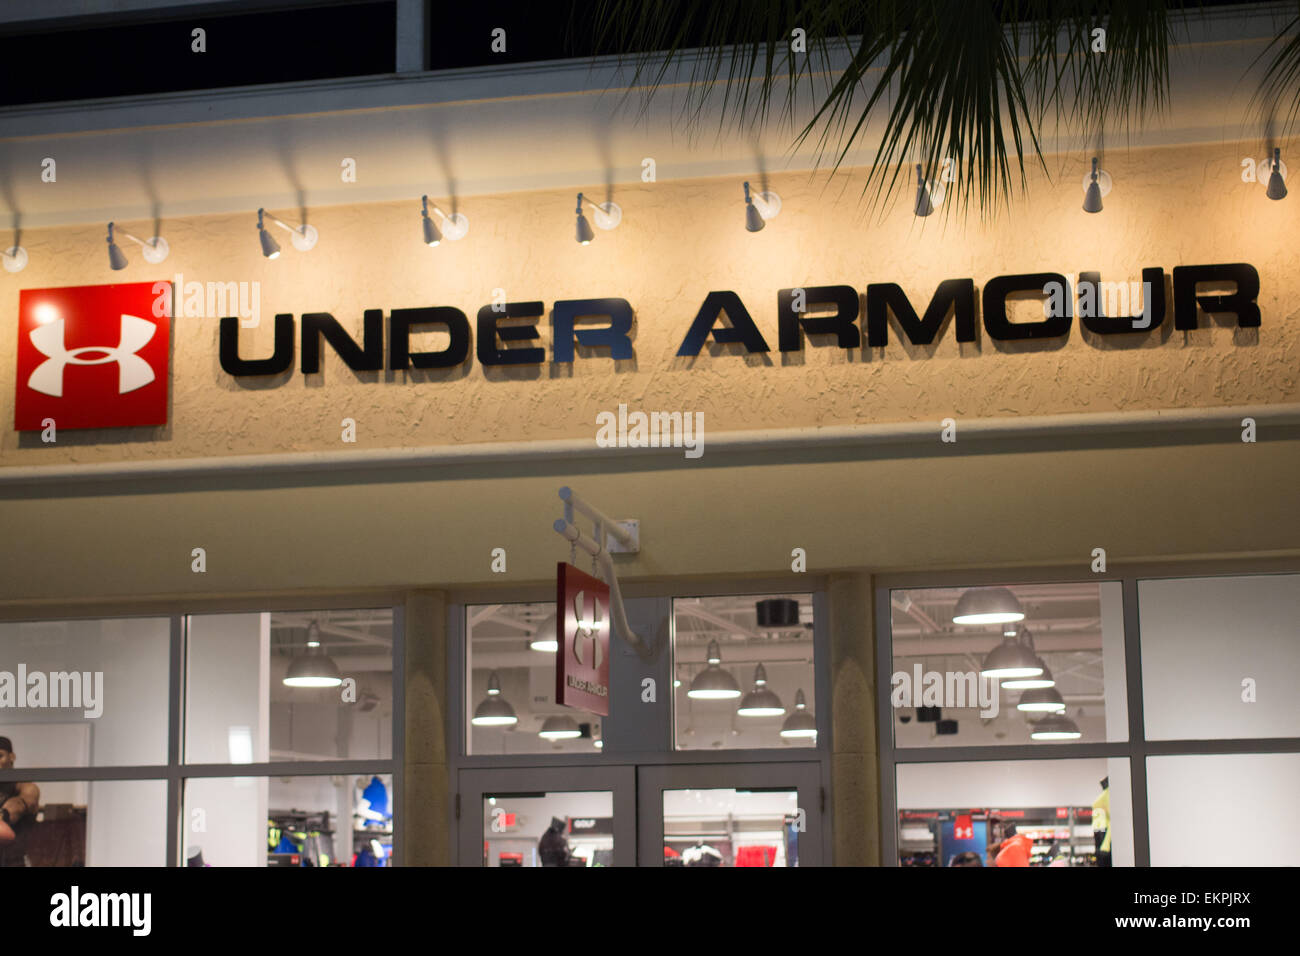 Under Armour sign at the Orlando Outlet Mall in Florida Stock Photo ... a4ca65c30